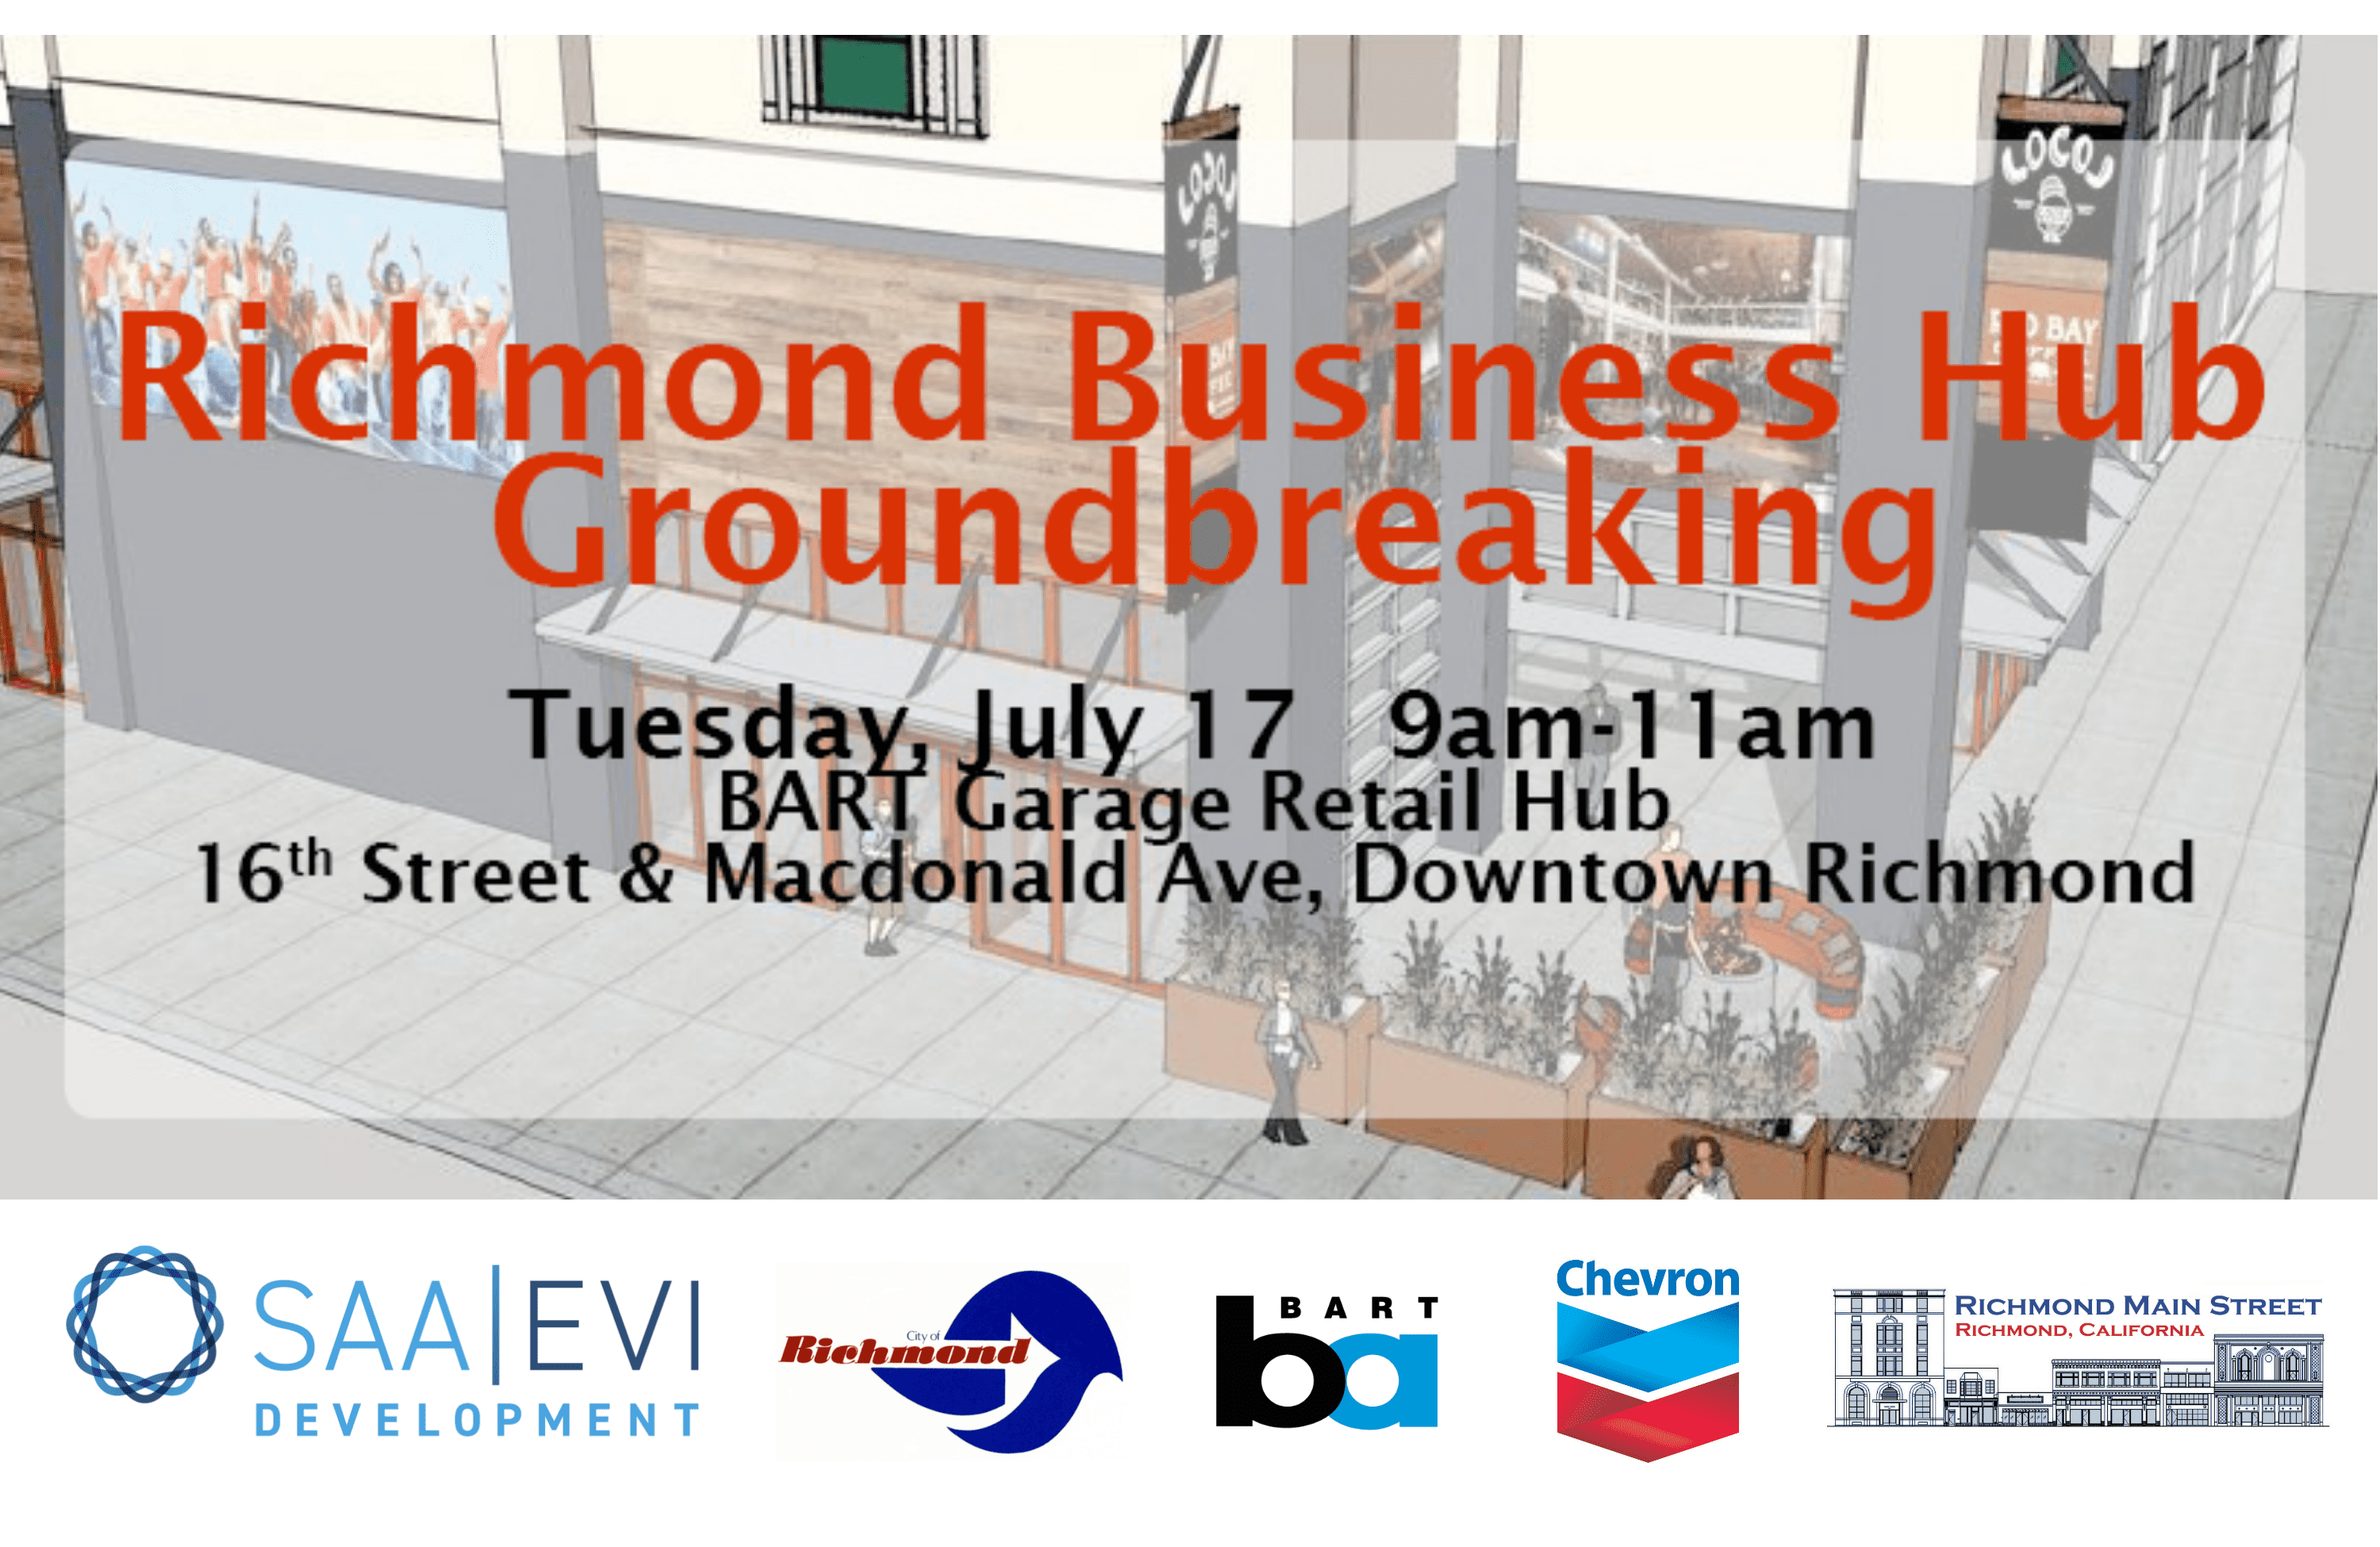 Invite for Richmond Business Hub Groundbreaking on July 17, 2018